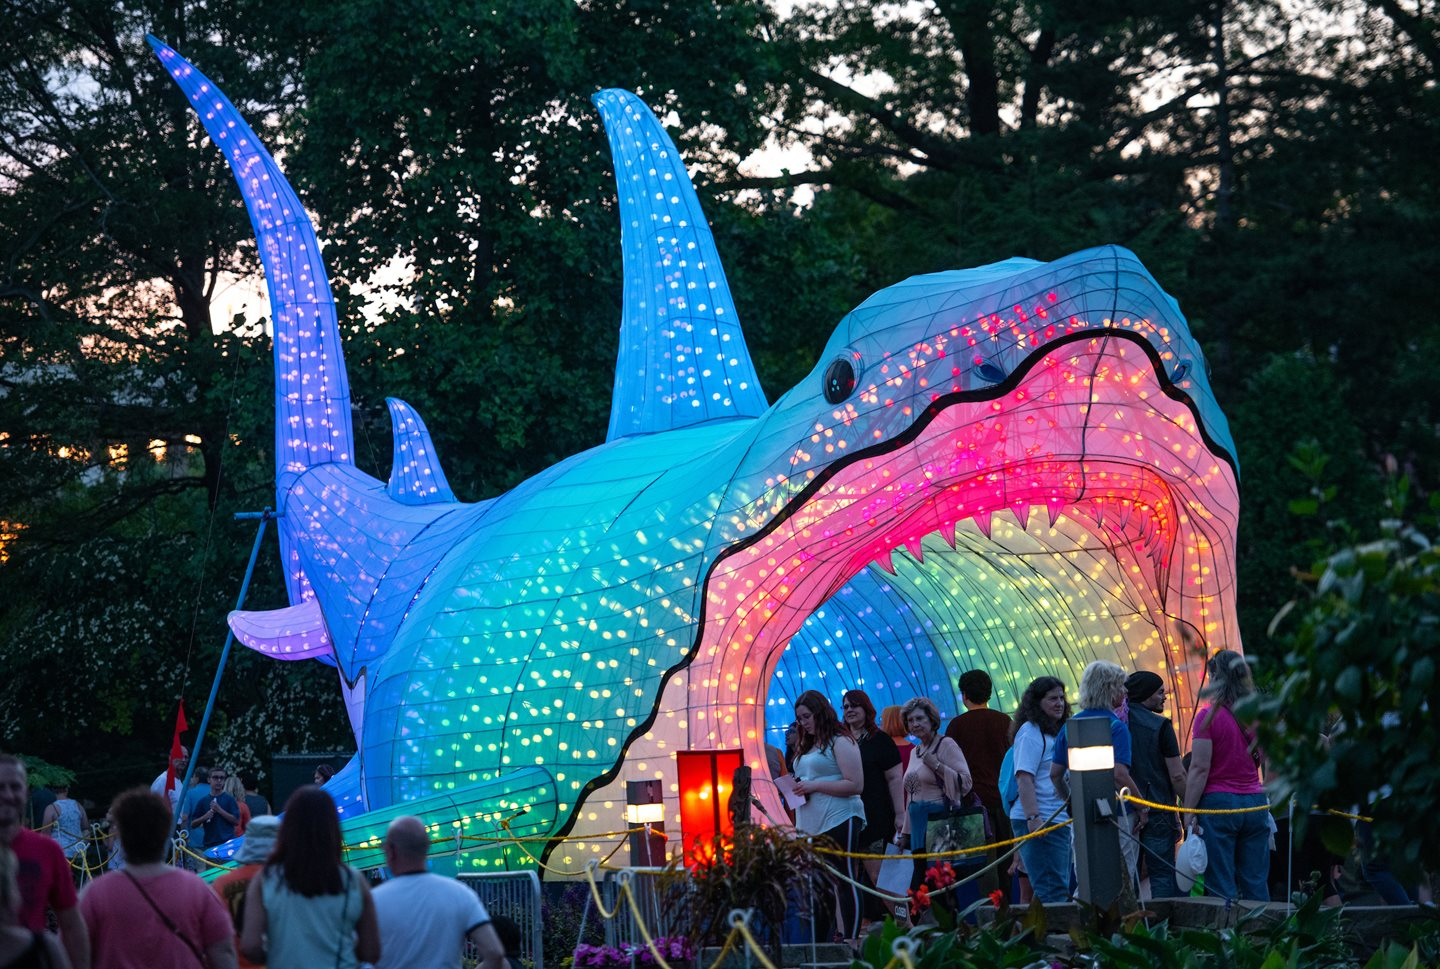 Cleveland Metroparks Asian Lantern Festival Attendance Tops 183,000, Sets New National Record